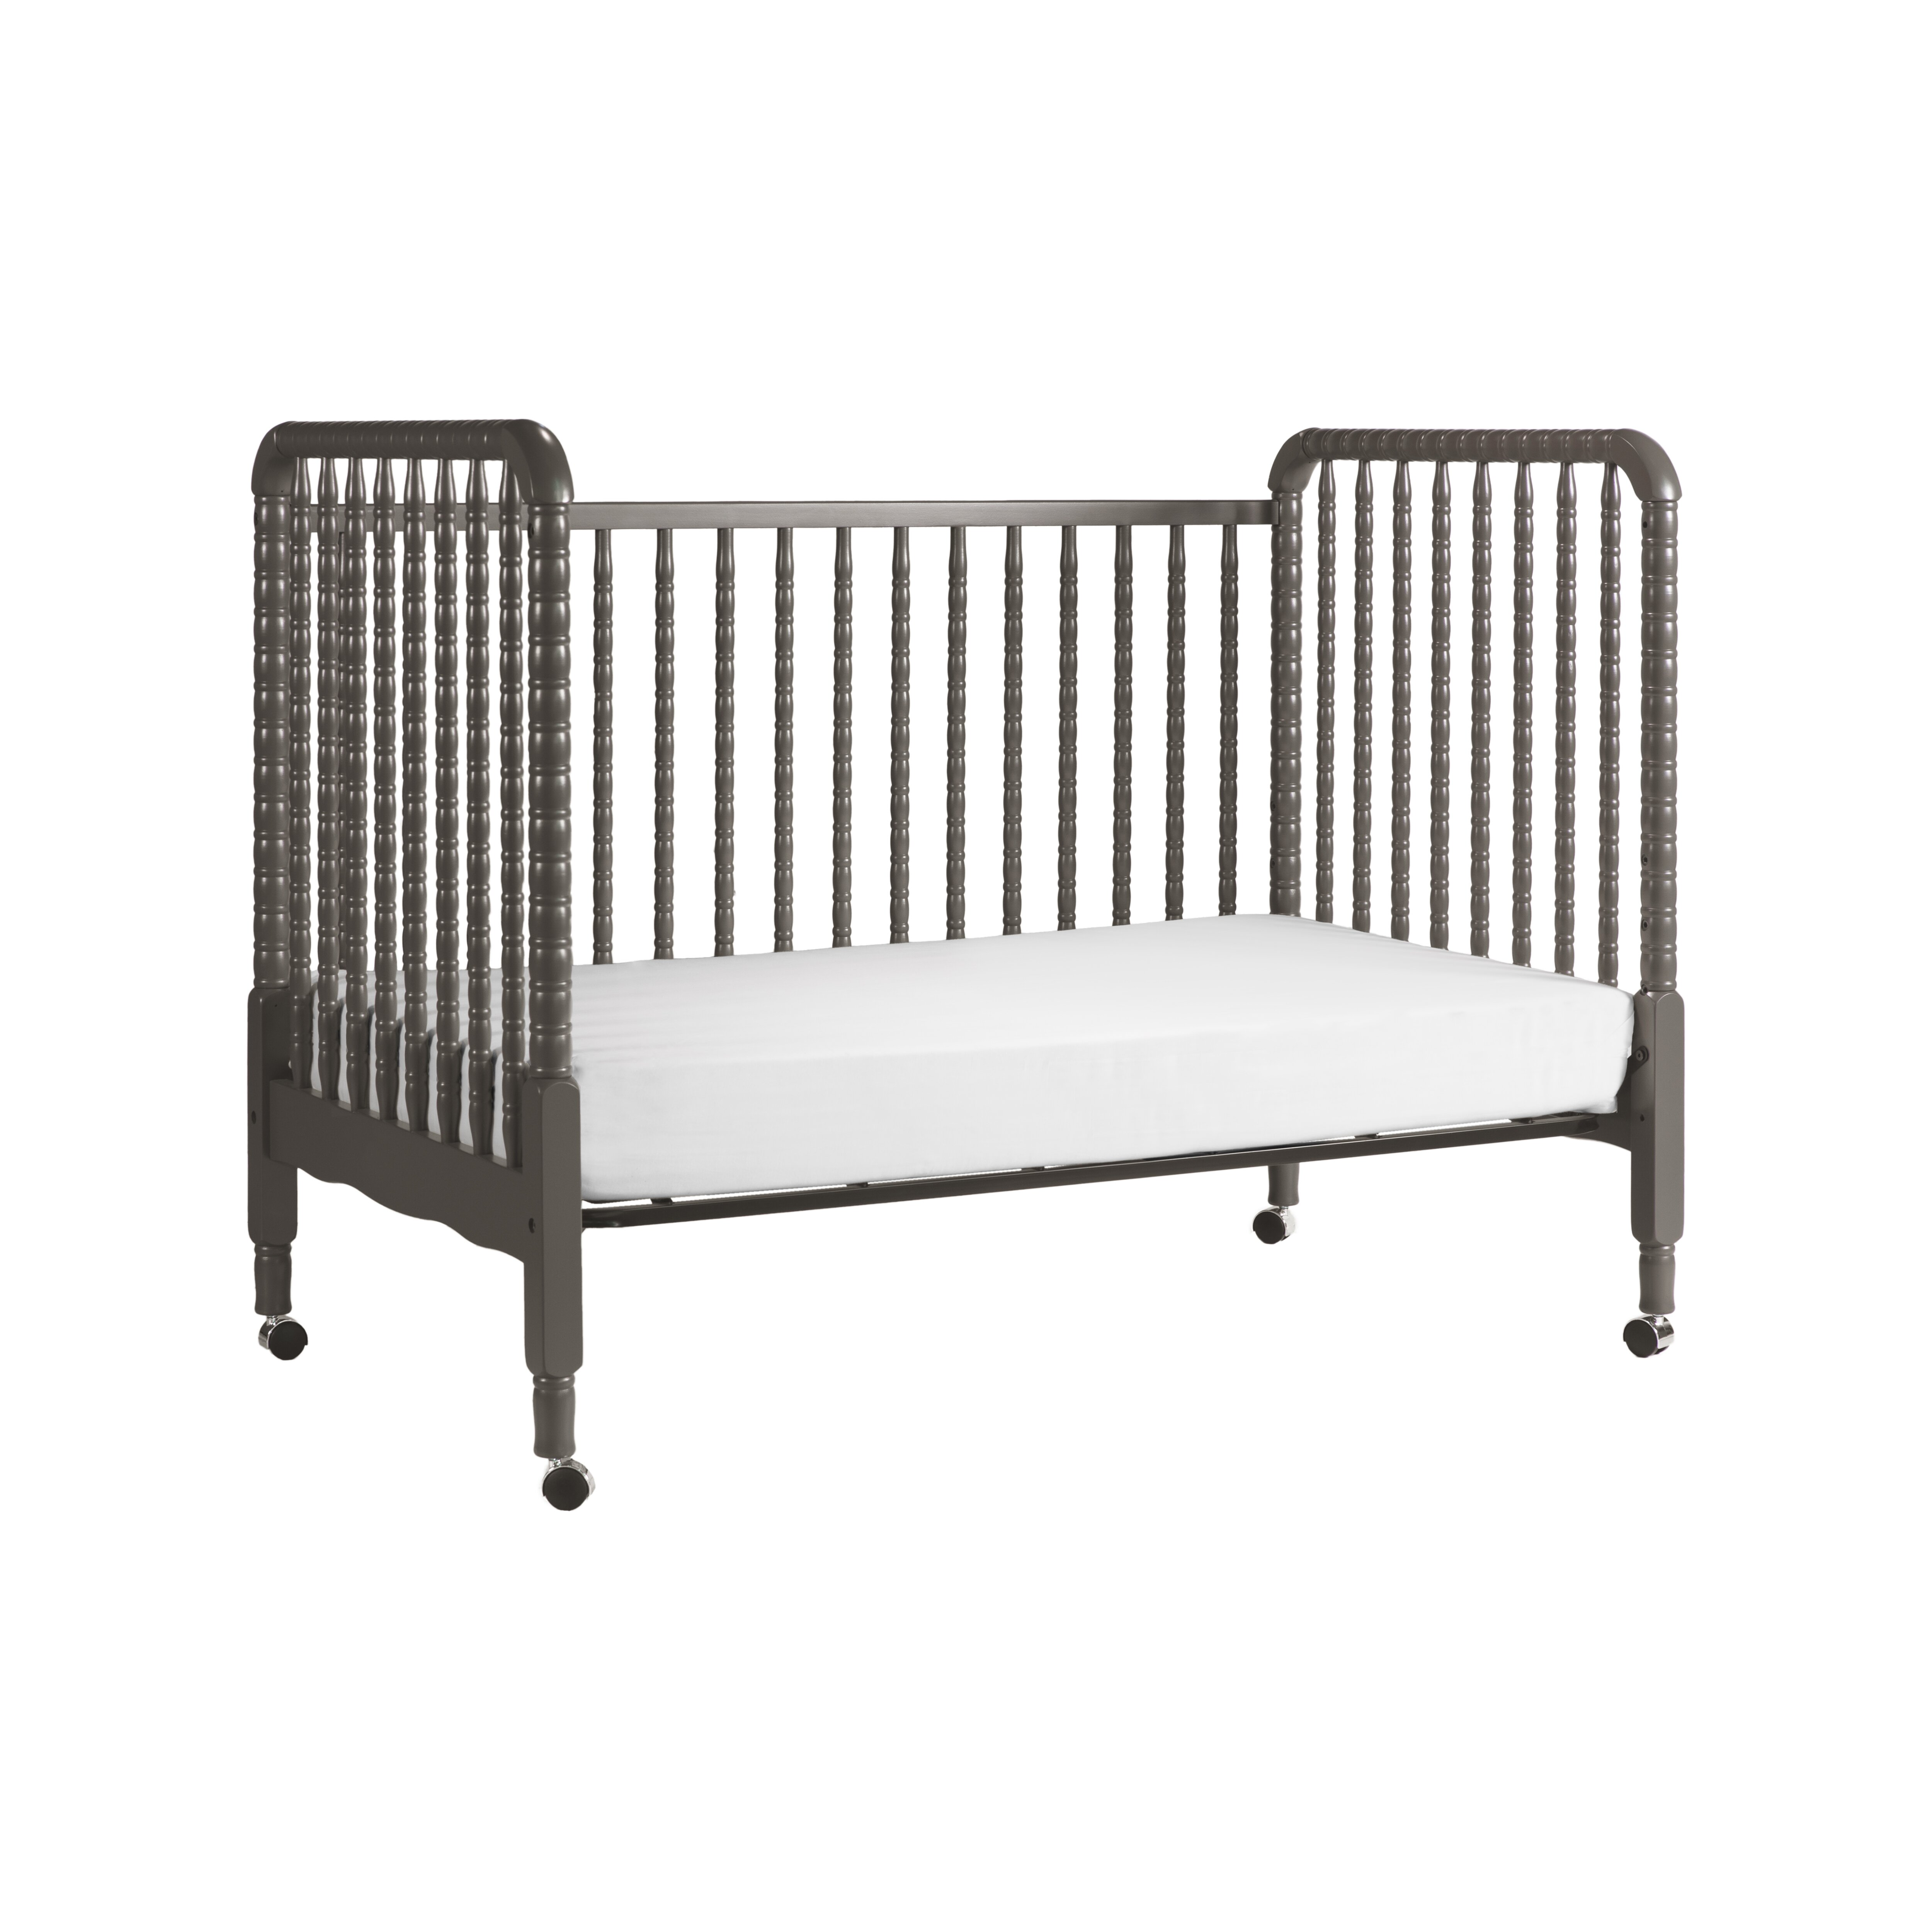 Jenny lind crib for sale - Davinci Jenny Lind 3 In 1 Convertible Crib